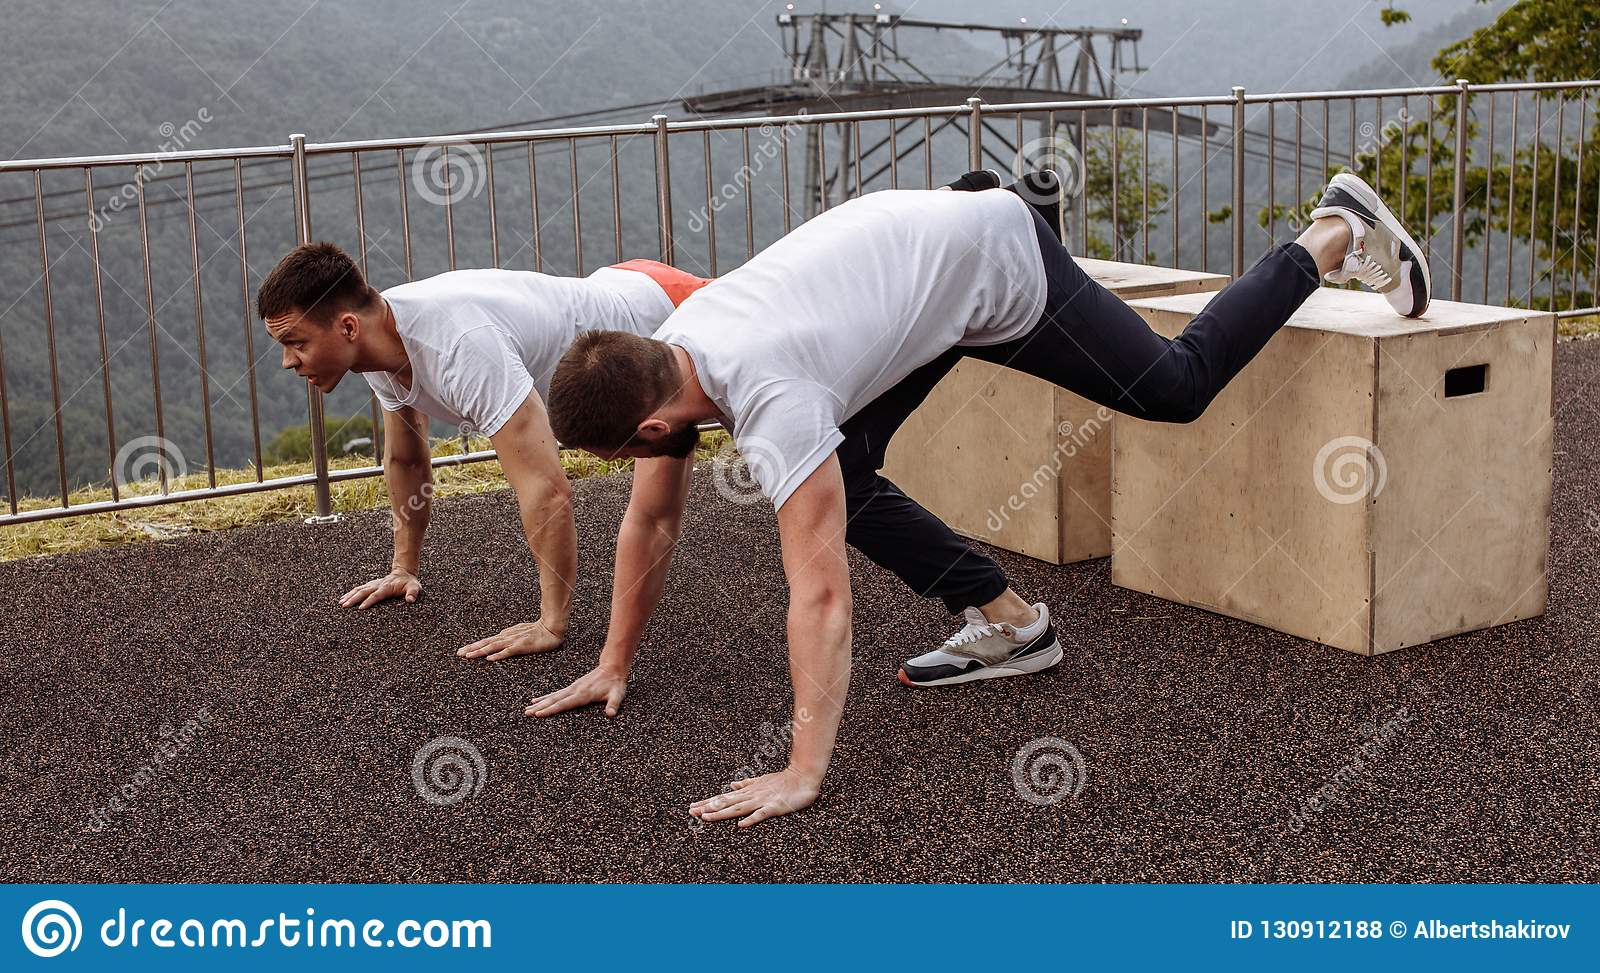 Two Young Athletes Doing Push-ups Outdoors  Stock Photo